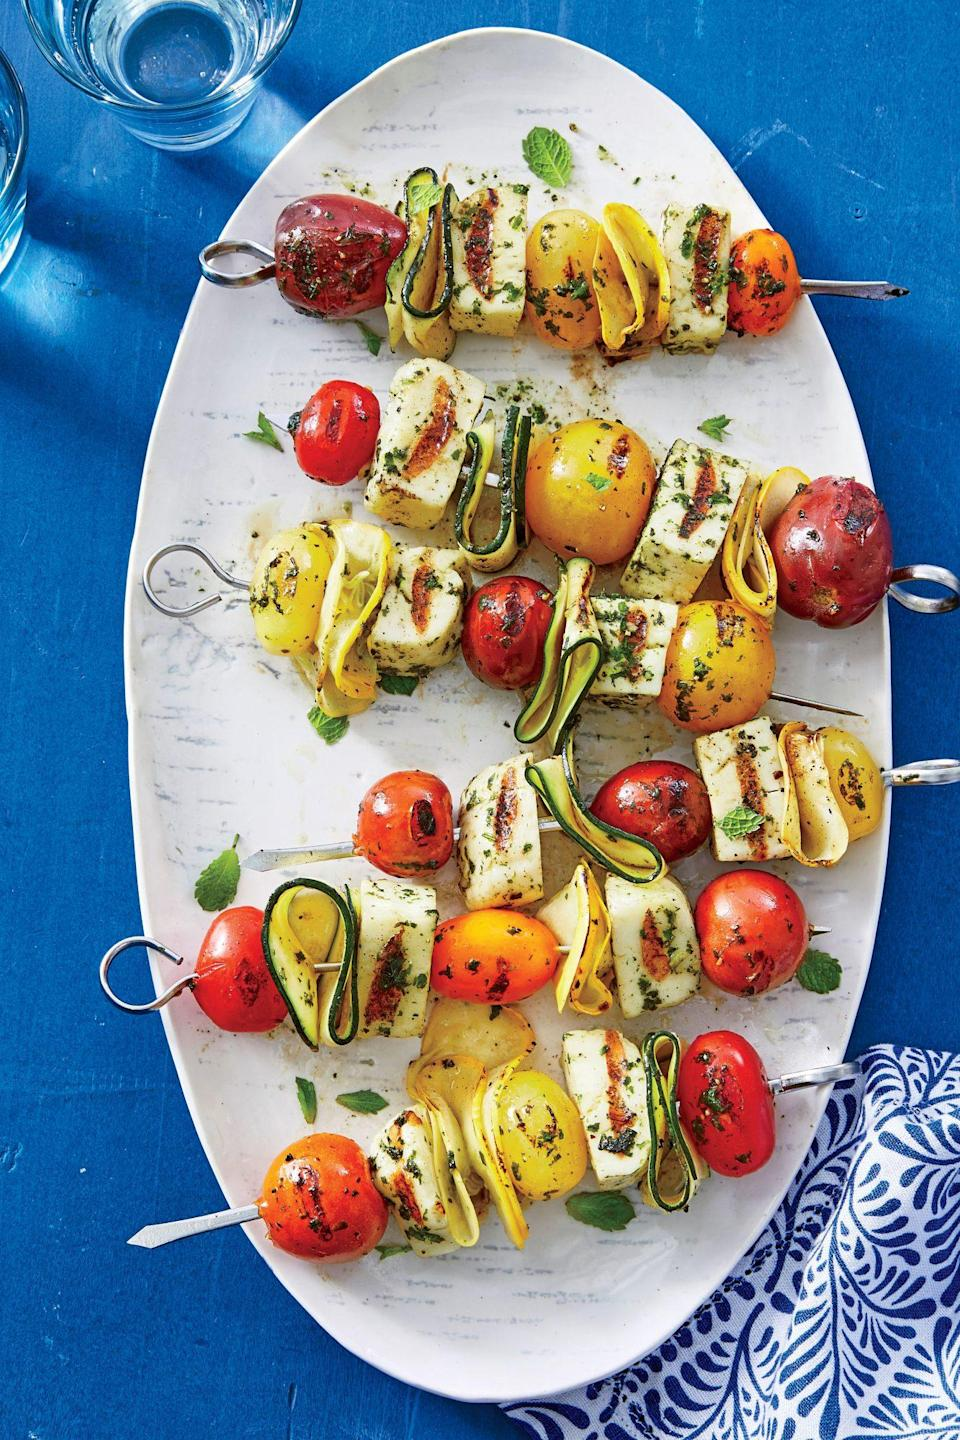 """<p>Firm <a href=""""https://www.southernliving.com/recipes/squash-halloumi-salad-recipe"""" rel=""""nofollow noopener"""" target=""""_blank"""" data-ylk=""""slk:Halloumi cheese"""" class=""""link rapid-noclick-resp"""">Halloumi cheese</a> holds up well on the grill and provides a nice contrast to the tender layers of squash on these vegetarian kebabs. Use a Y-shaped vegetable peeler to shave the squash into long, thin strips. Turn these kebabs into a quick <a href=""""https://www.southernliving.com/recipes/cornbread-panzanella-squash-recipe"""" rel=""""nofollow noopener"""" target=""""_blank"""" data-ylk=""""slk:panzanella"""" class=""""link rapid-noclick-resp"""">panzanella</a>. Removing the cooked ingredients from the skewers and toss with olive oil, lemon juice, and toasted bread cubes.</p>"""